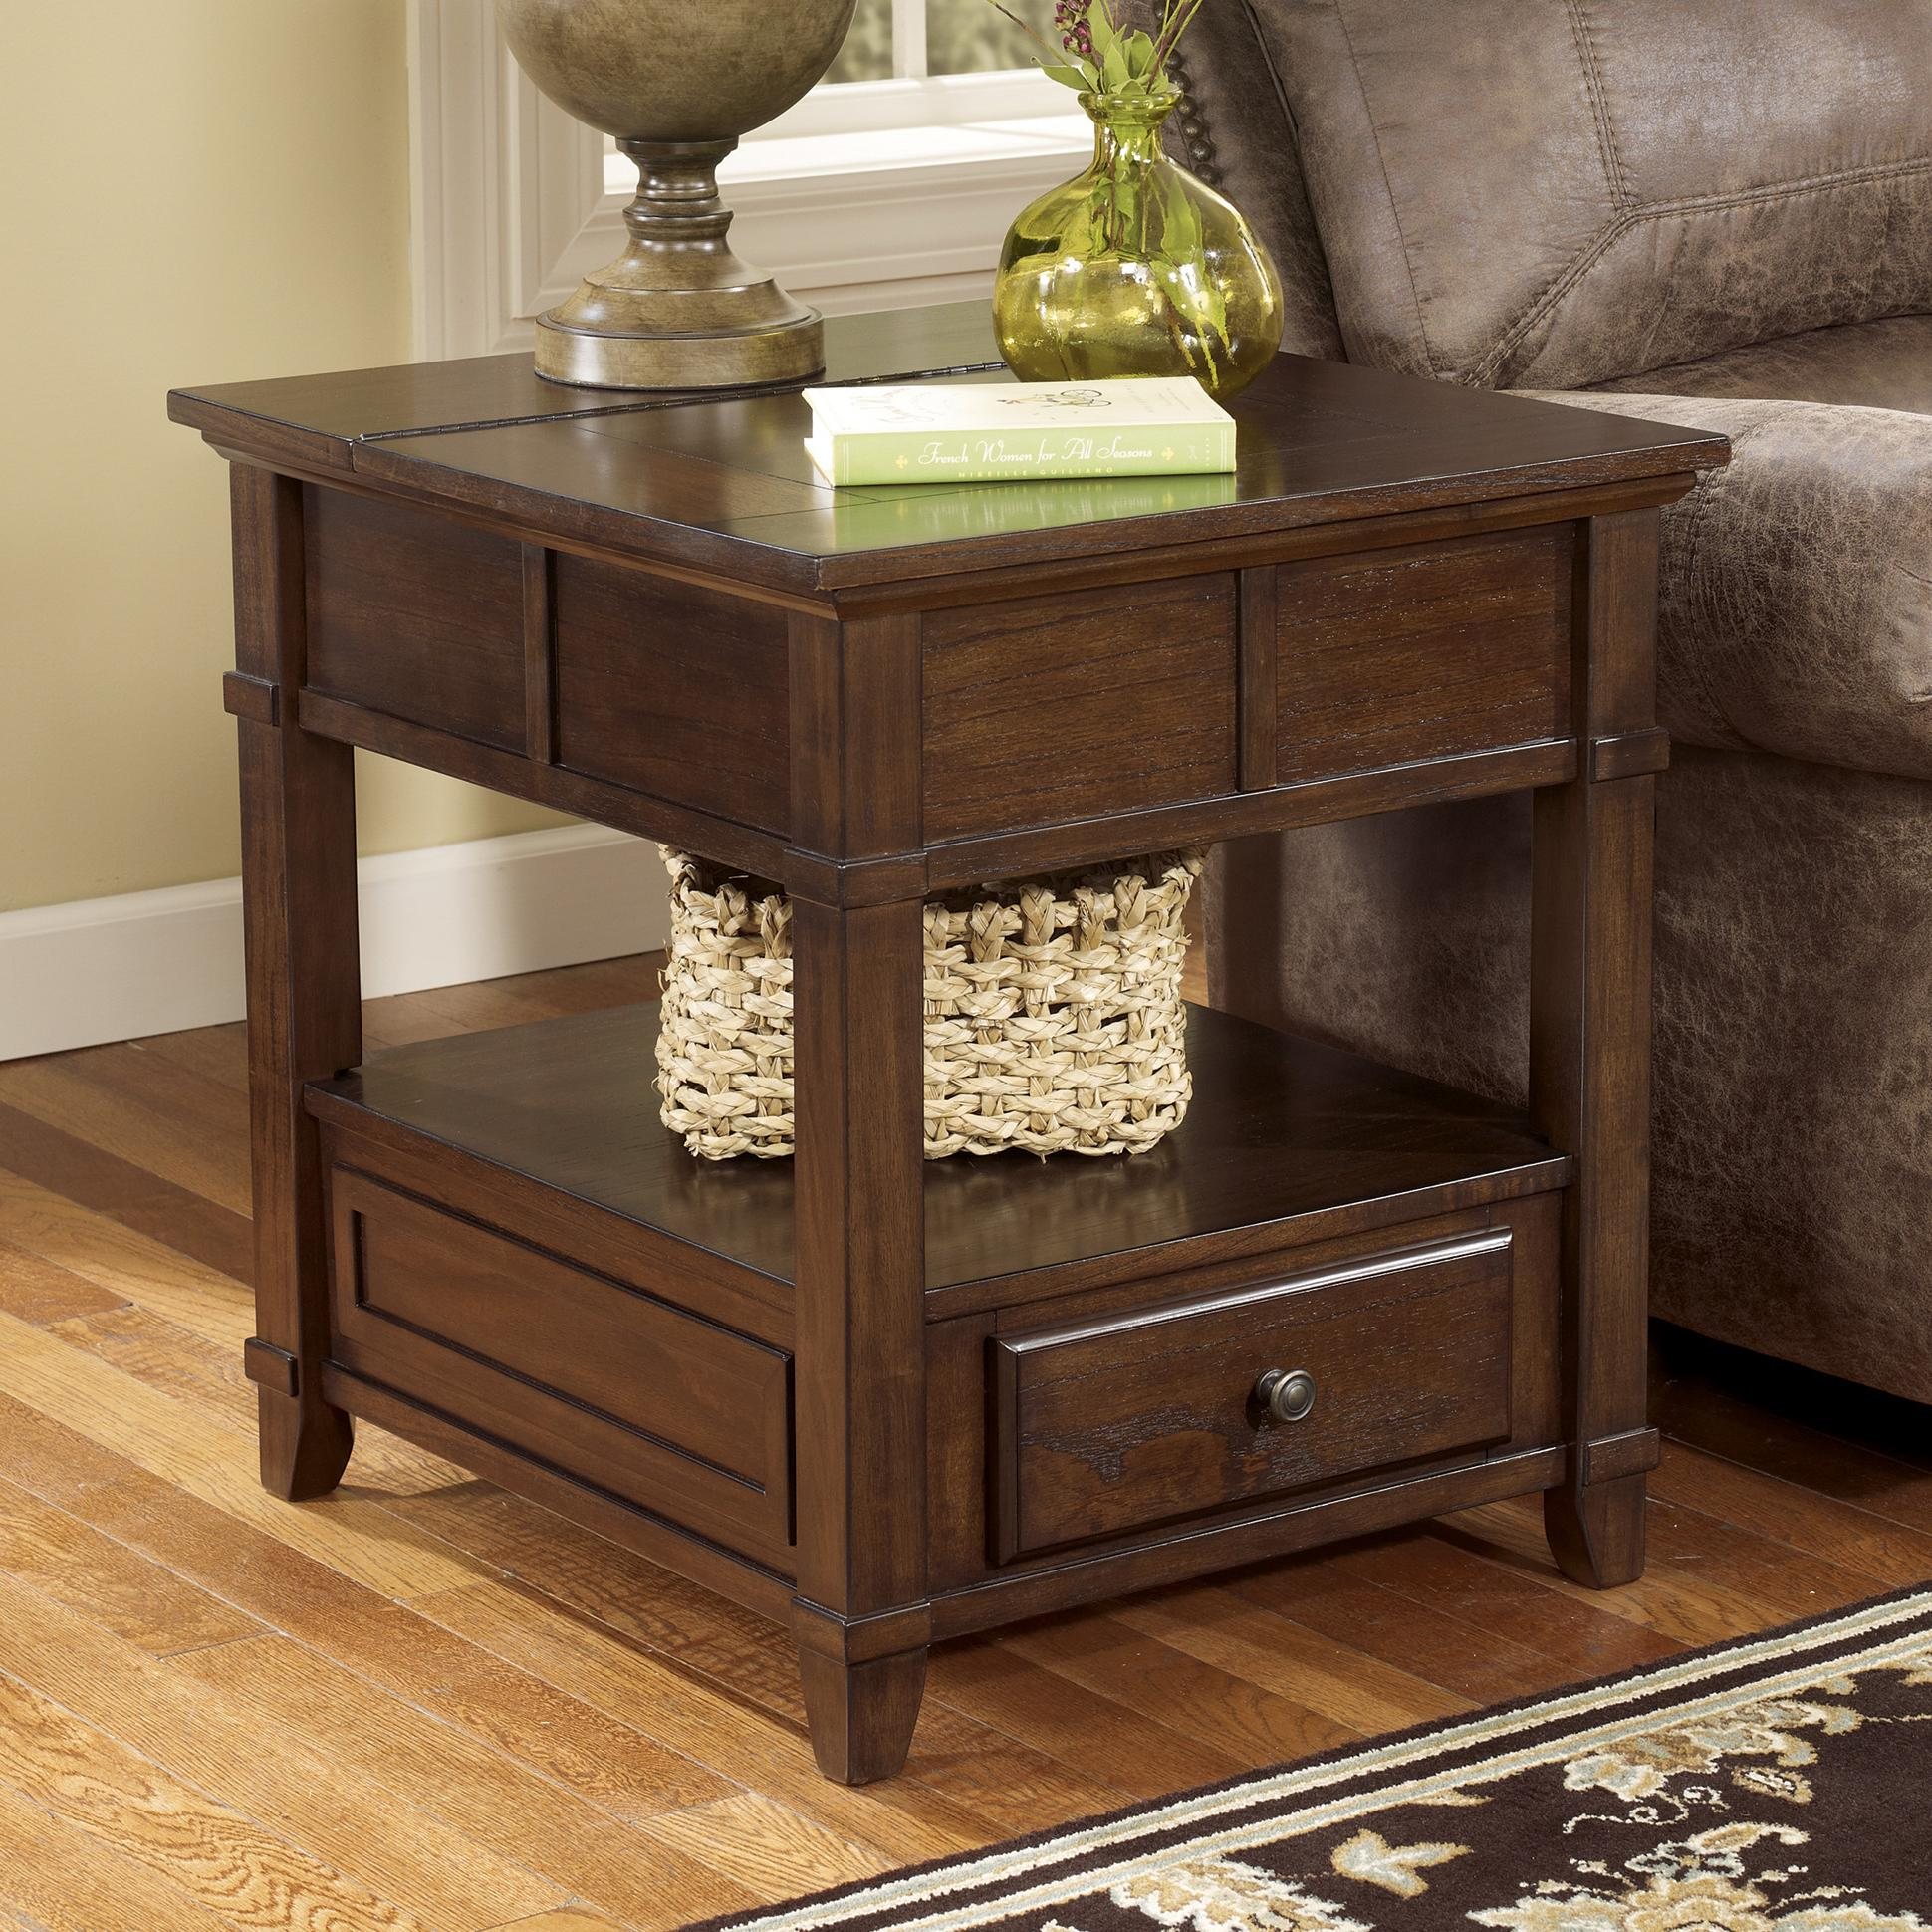 Gately End Table by Signature Design by Ashley at Northeast Factory Direct